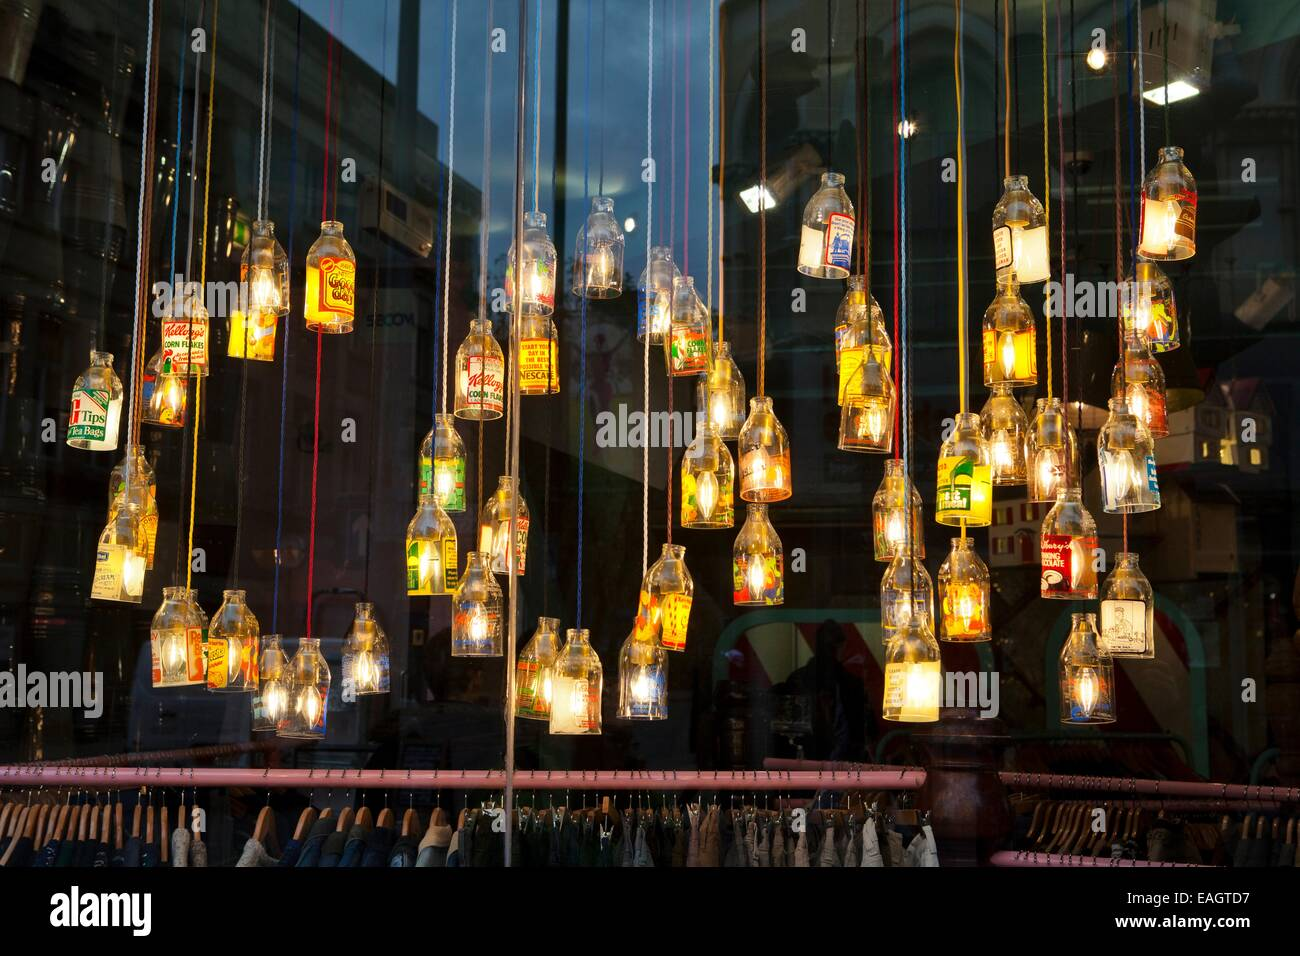 U0027Cowu0027 Clothing Store With Broken Bottles As Lamp Shades Creating Art Deco  Appearance,